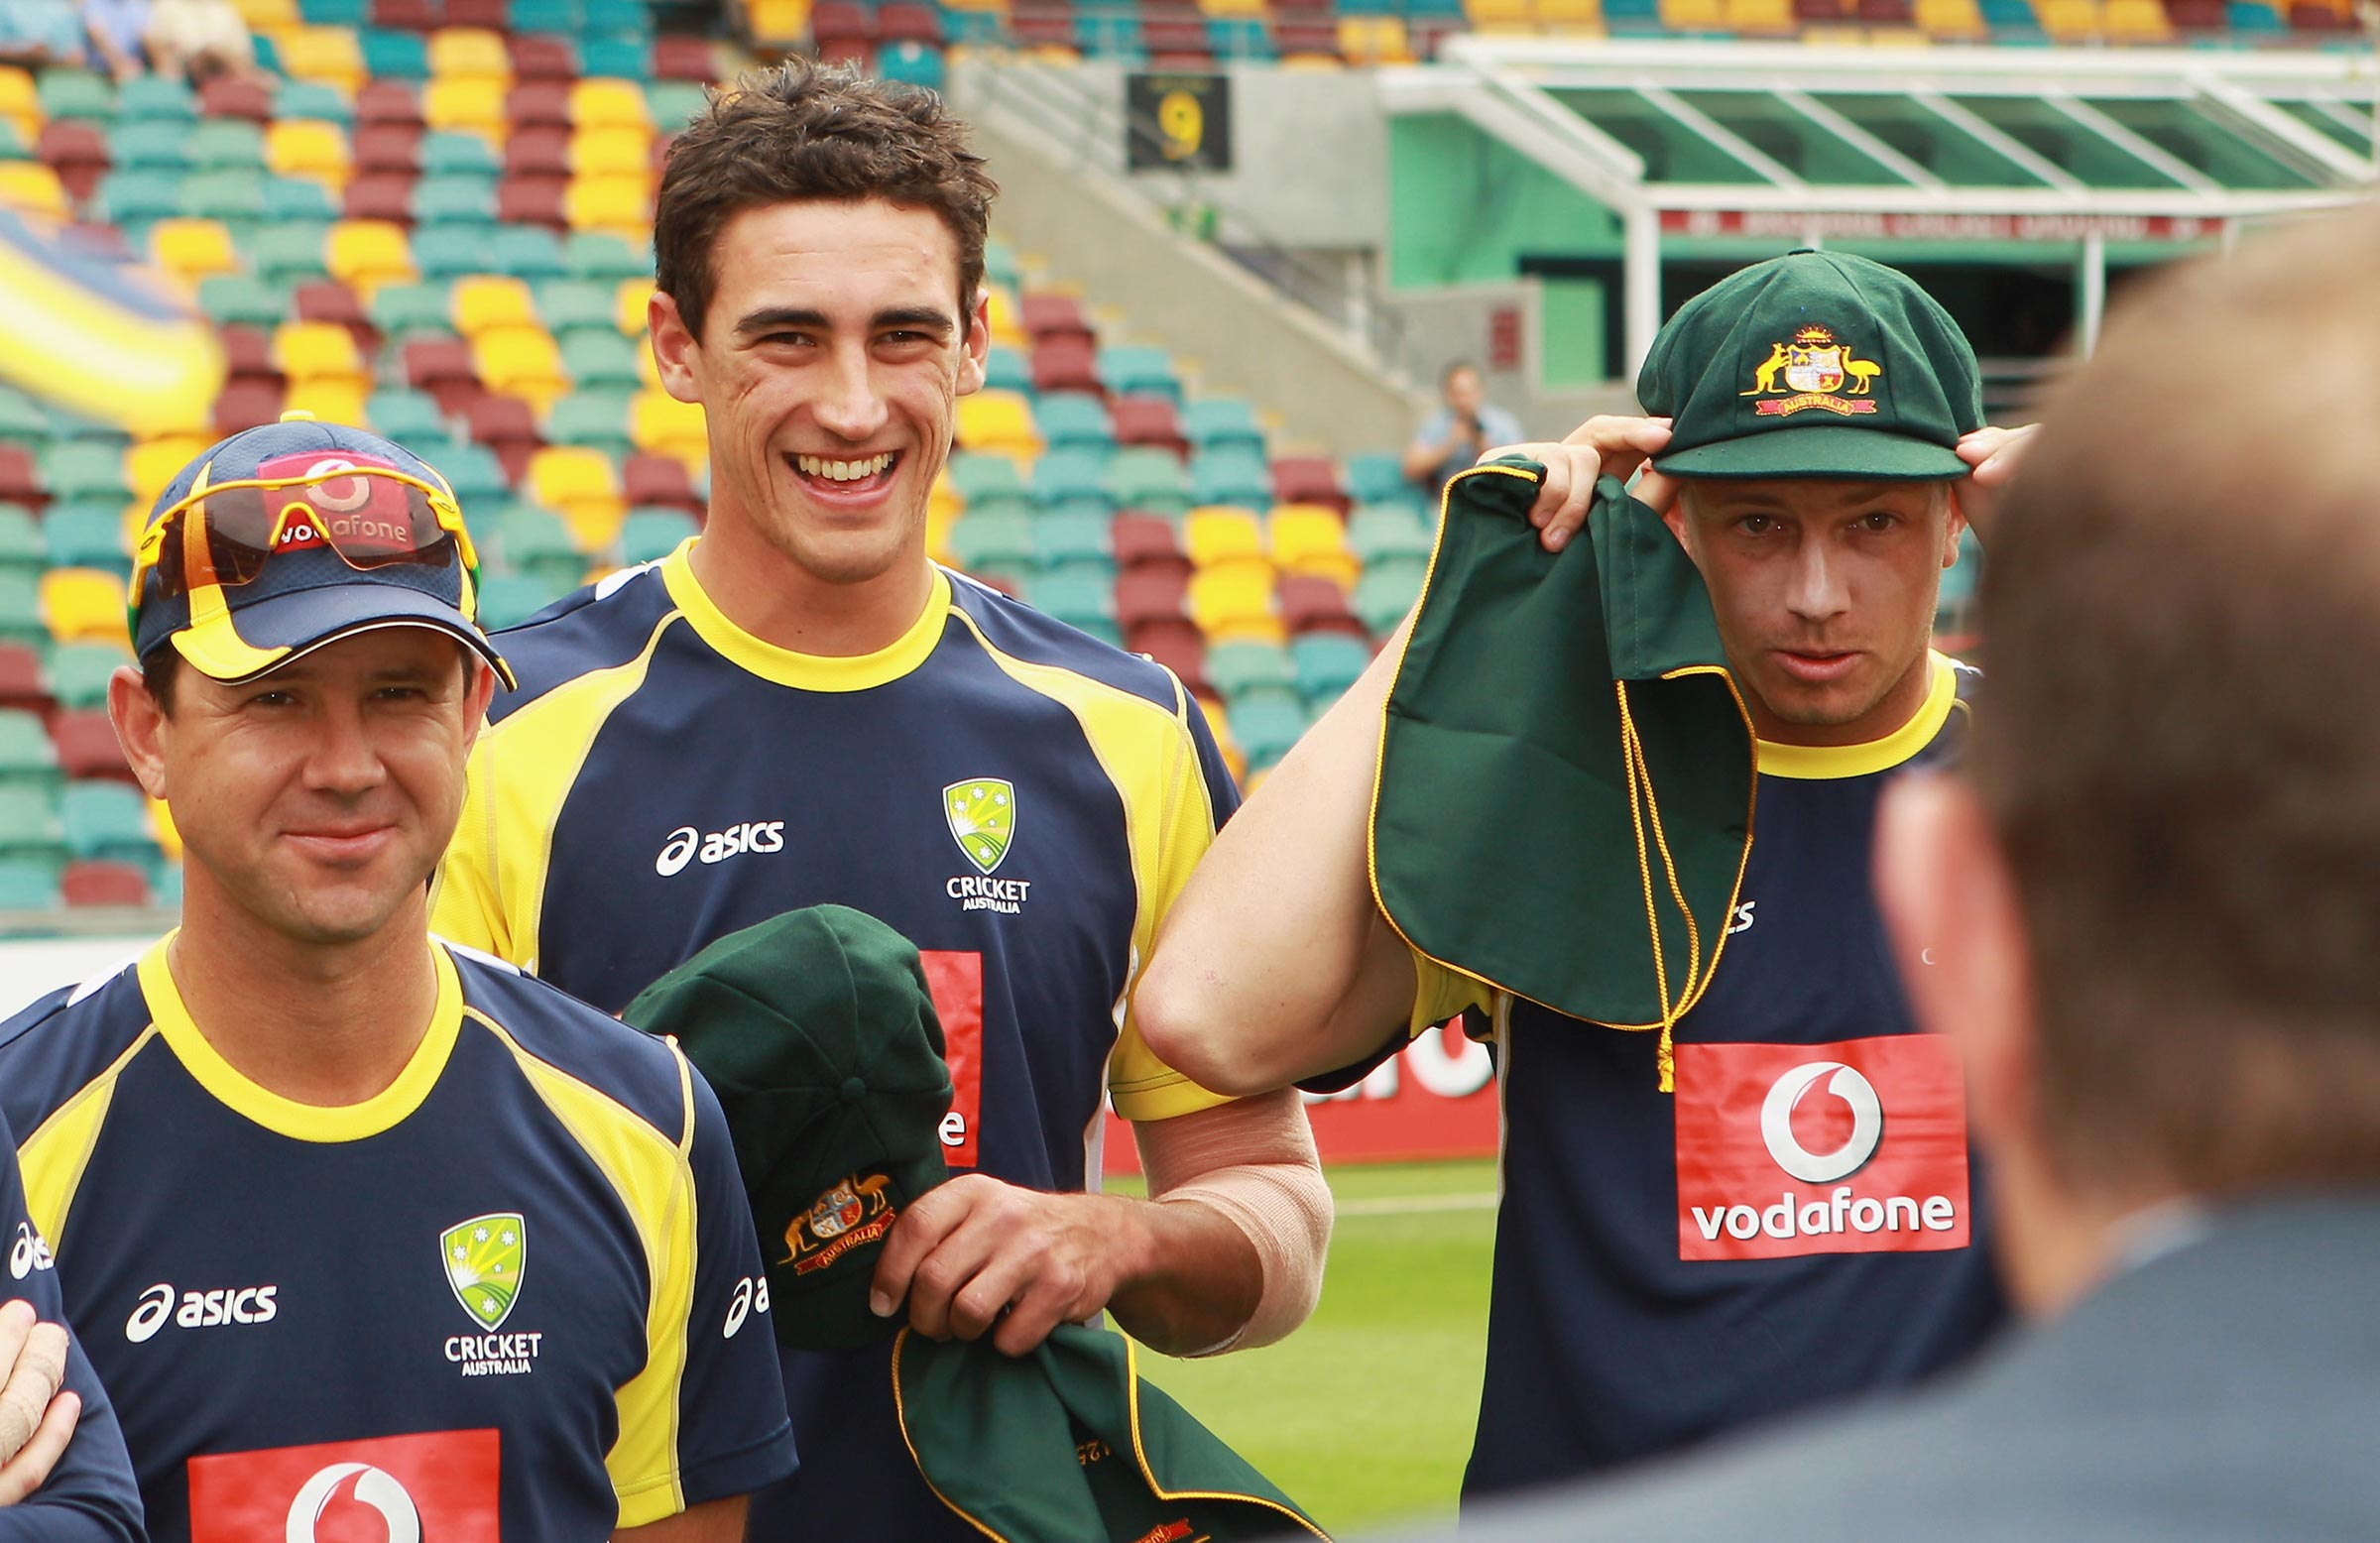 Ponting, Starc and Pattinson at the Gabba in 2011 // Getty